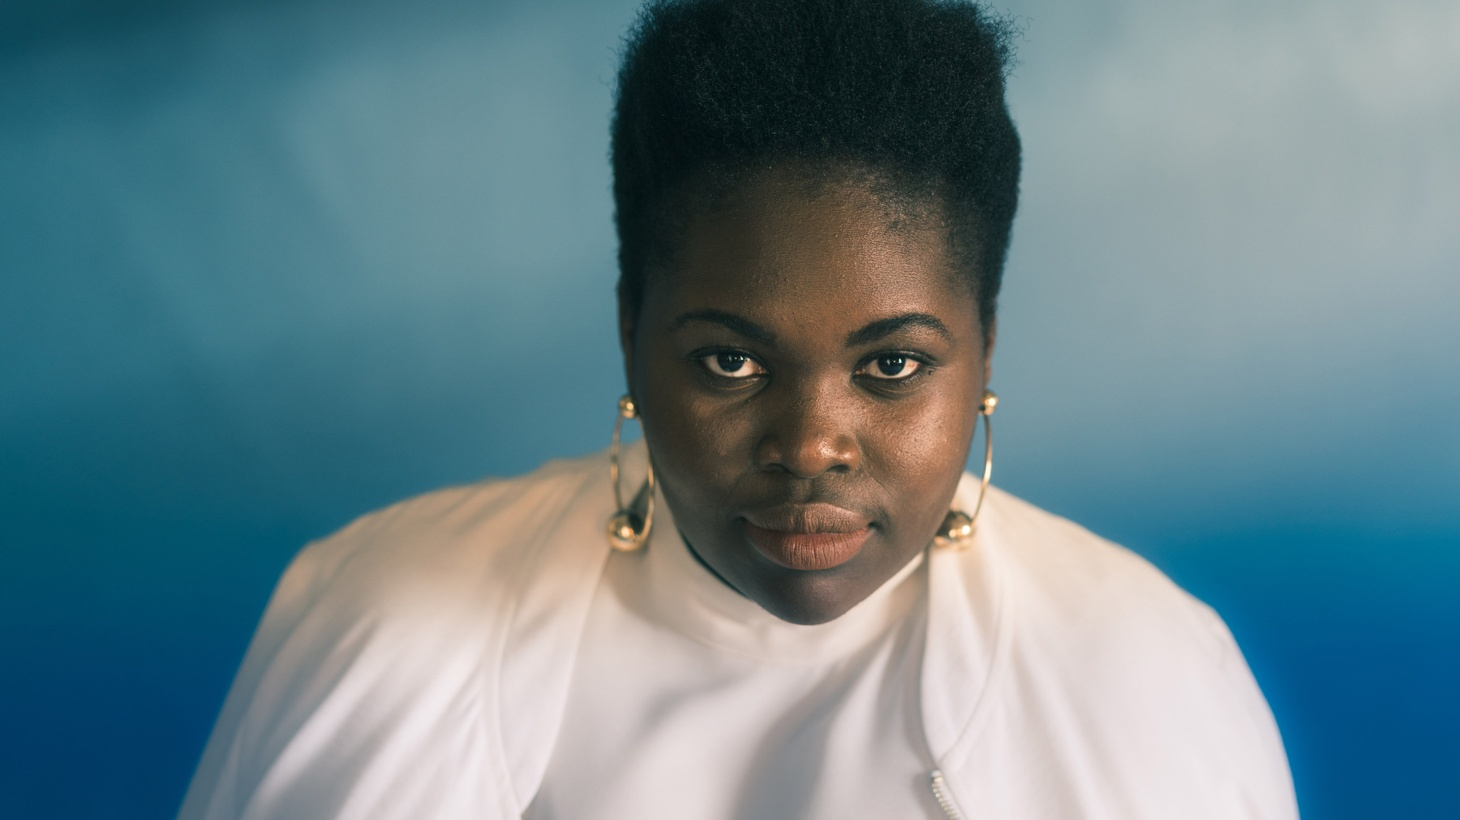 With Cuba's gates opening to the US we're eager to embrace the island's rich musical culture. An artist with a distinctive point of view is Daymé Arocena whose compositions are rooted in classic rhythms.